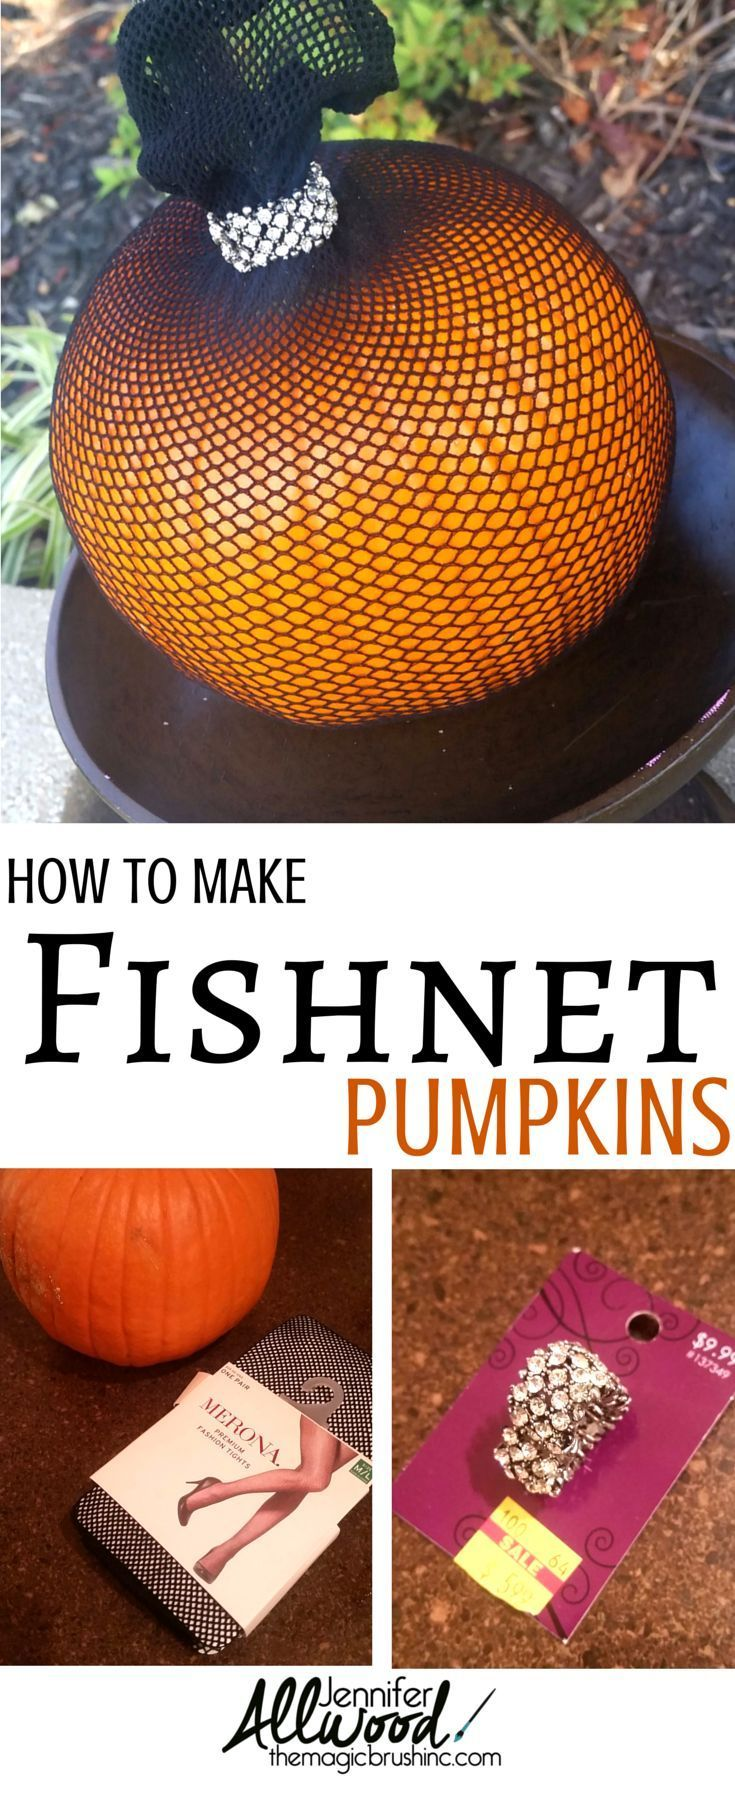 How to's : Here's an easy and clever way to decorate pumpkins for Halloween using fishnet stockings and a little bling! More pumpkin and fall DIY projects at TheMagicBrushinc.com #fall #falldecor #homedecor #diy #diyhomedecor #pumpkin #pumpkineverything #howto #decorating #decoratingideas